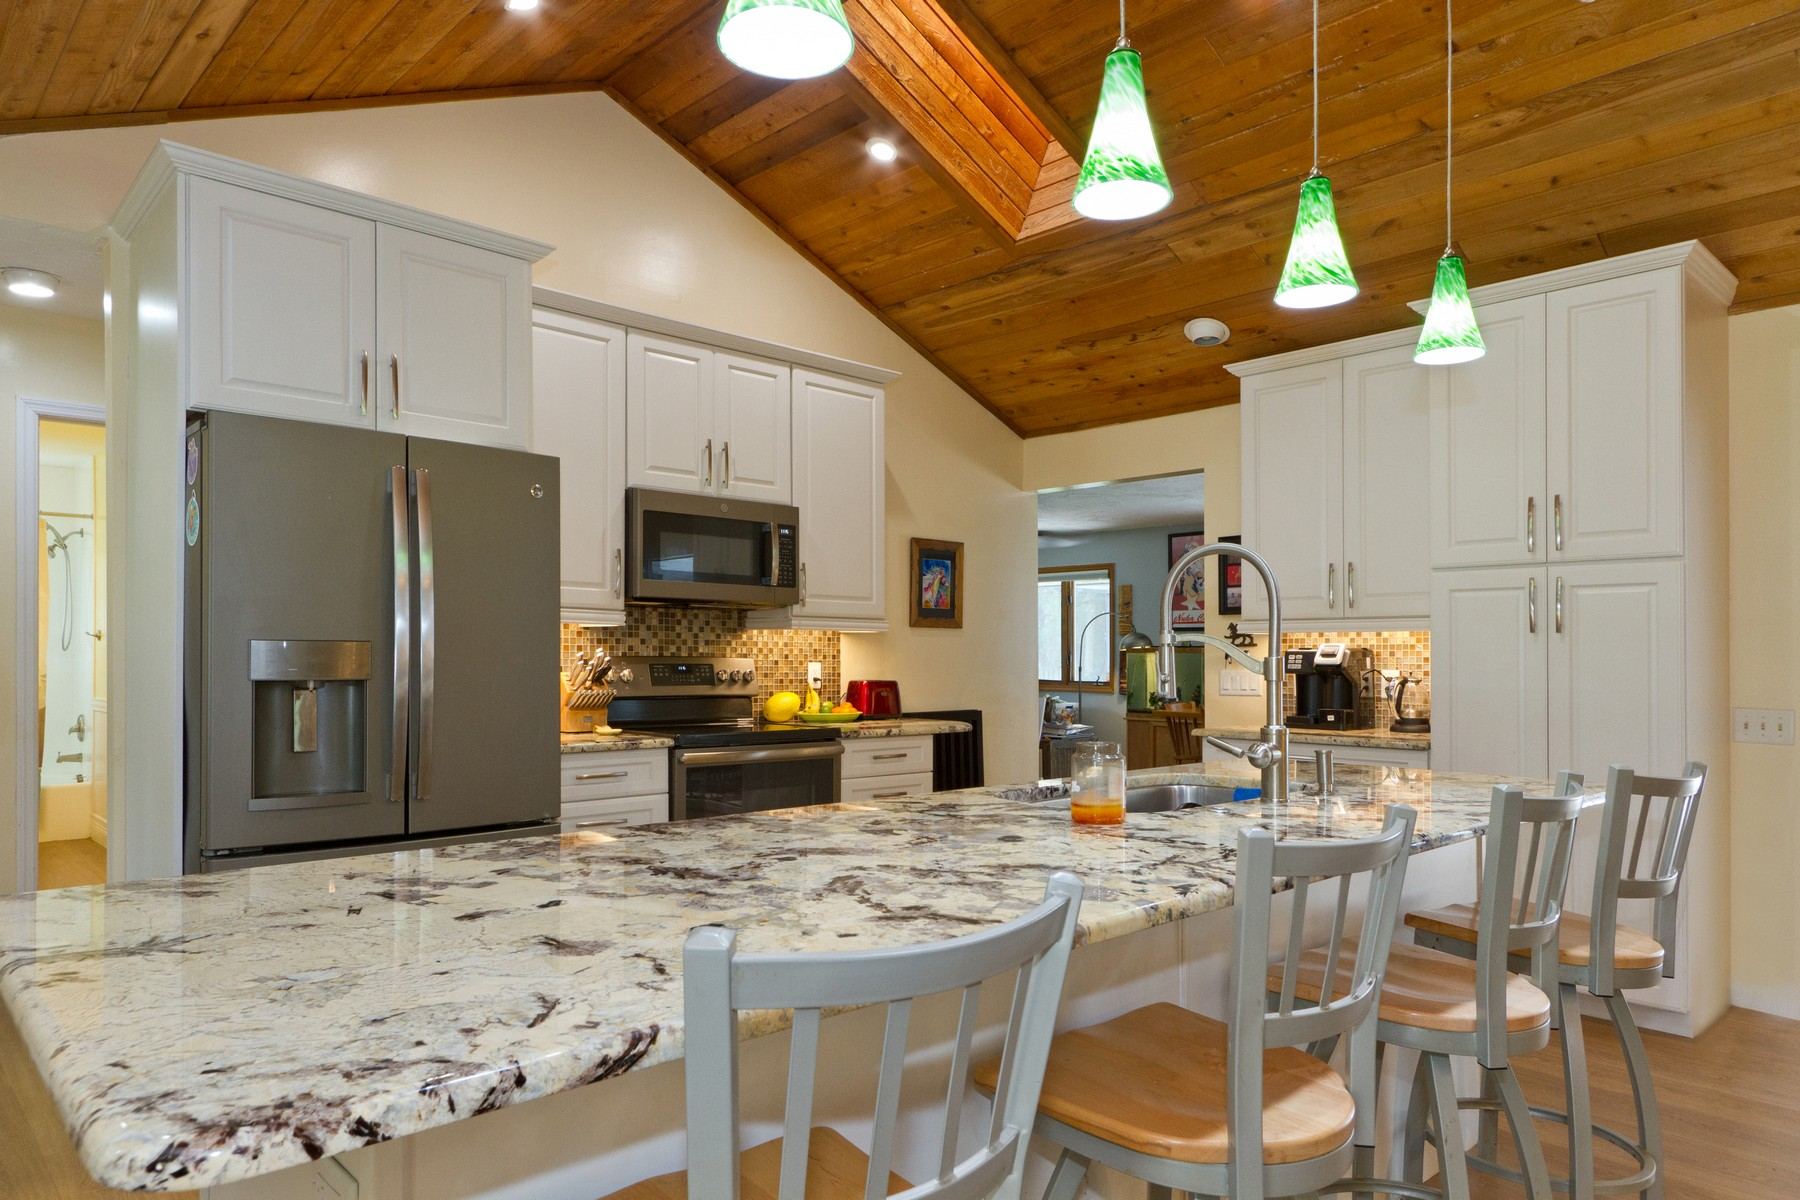 Single Family Home for Sale at Country Charm on a Wooded Acre so Bring Your Toys and Enjoy the Space! 7411 16th Manor Vero Beach, Florida 32966 United States